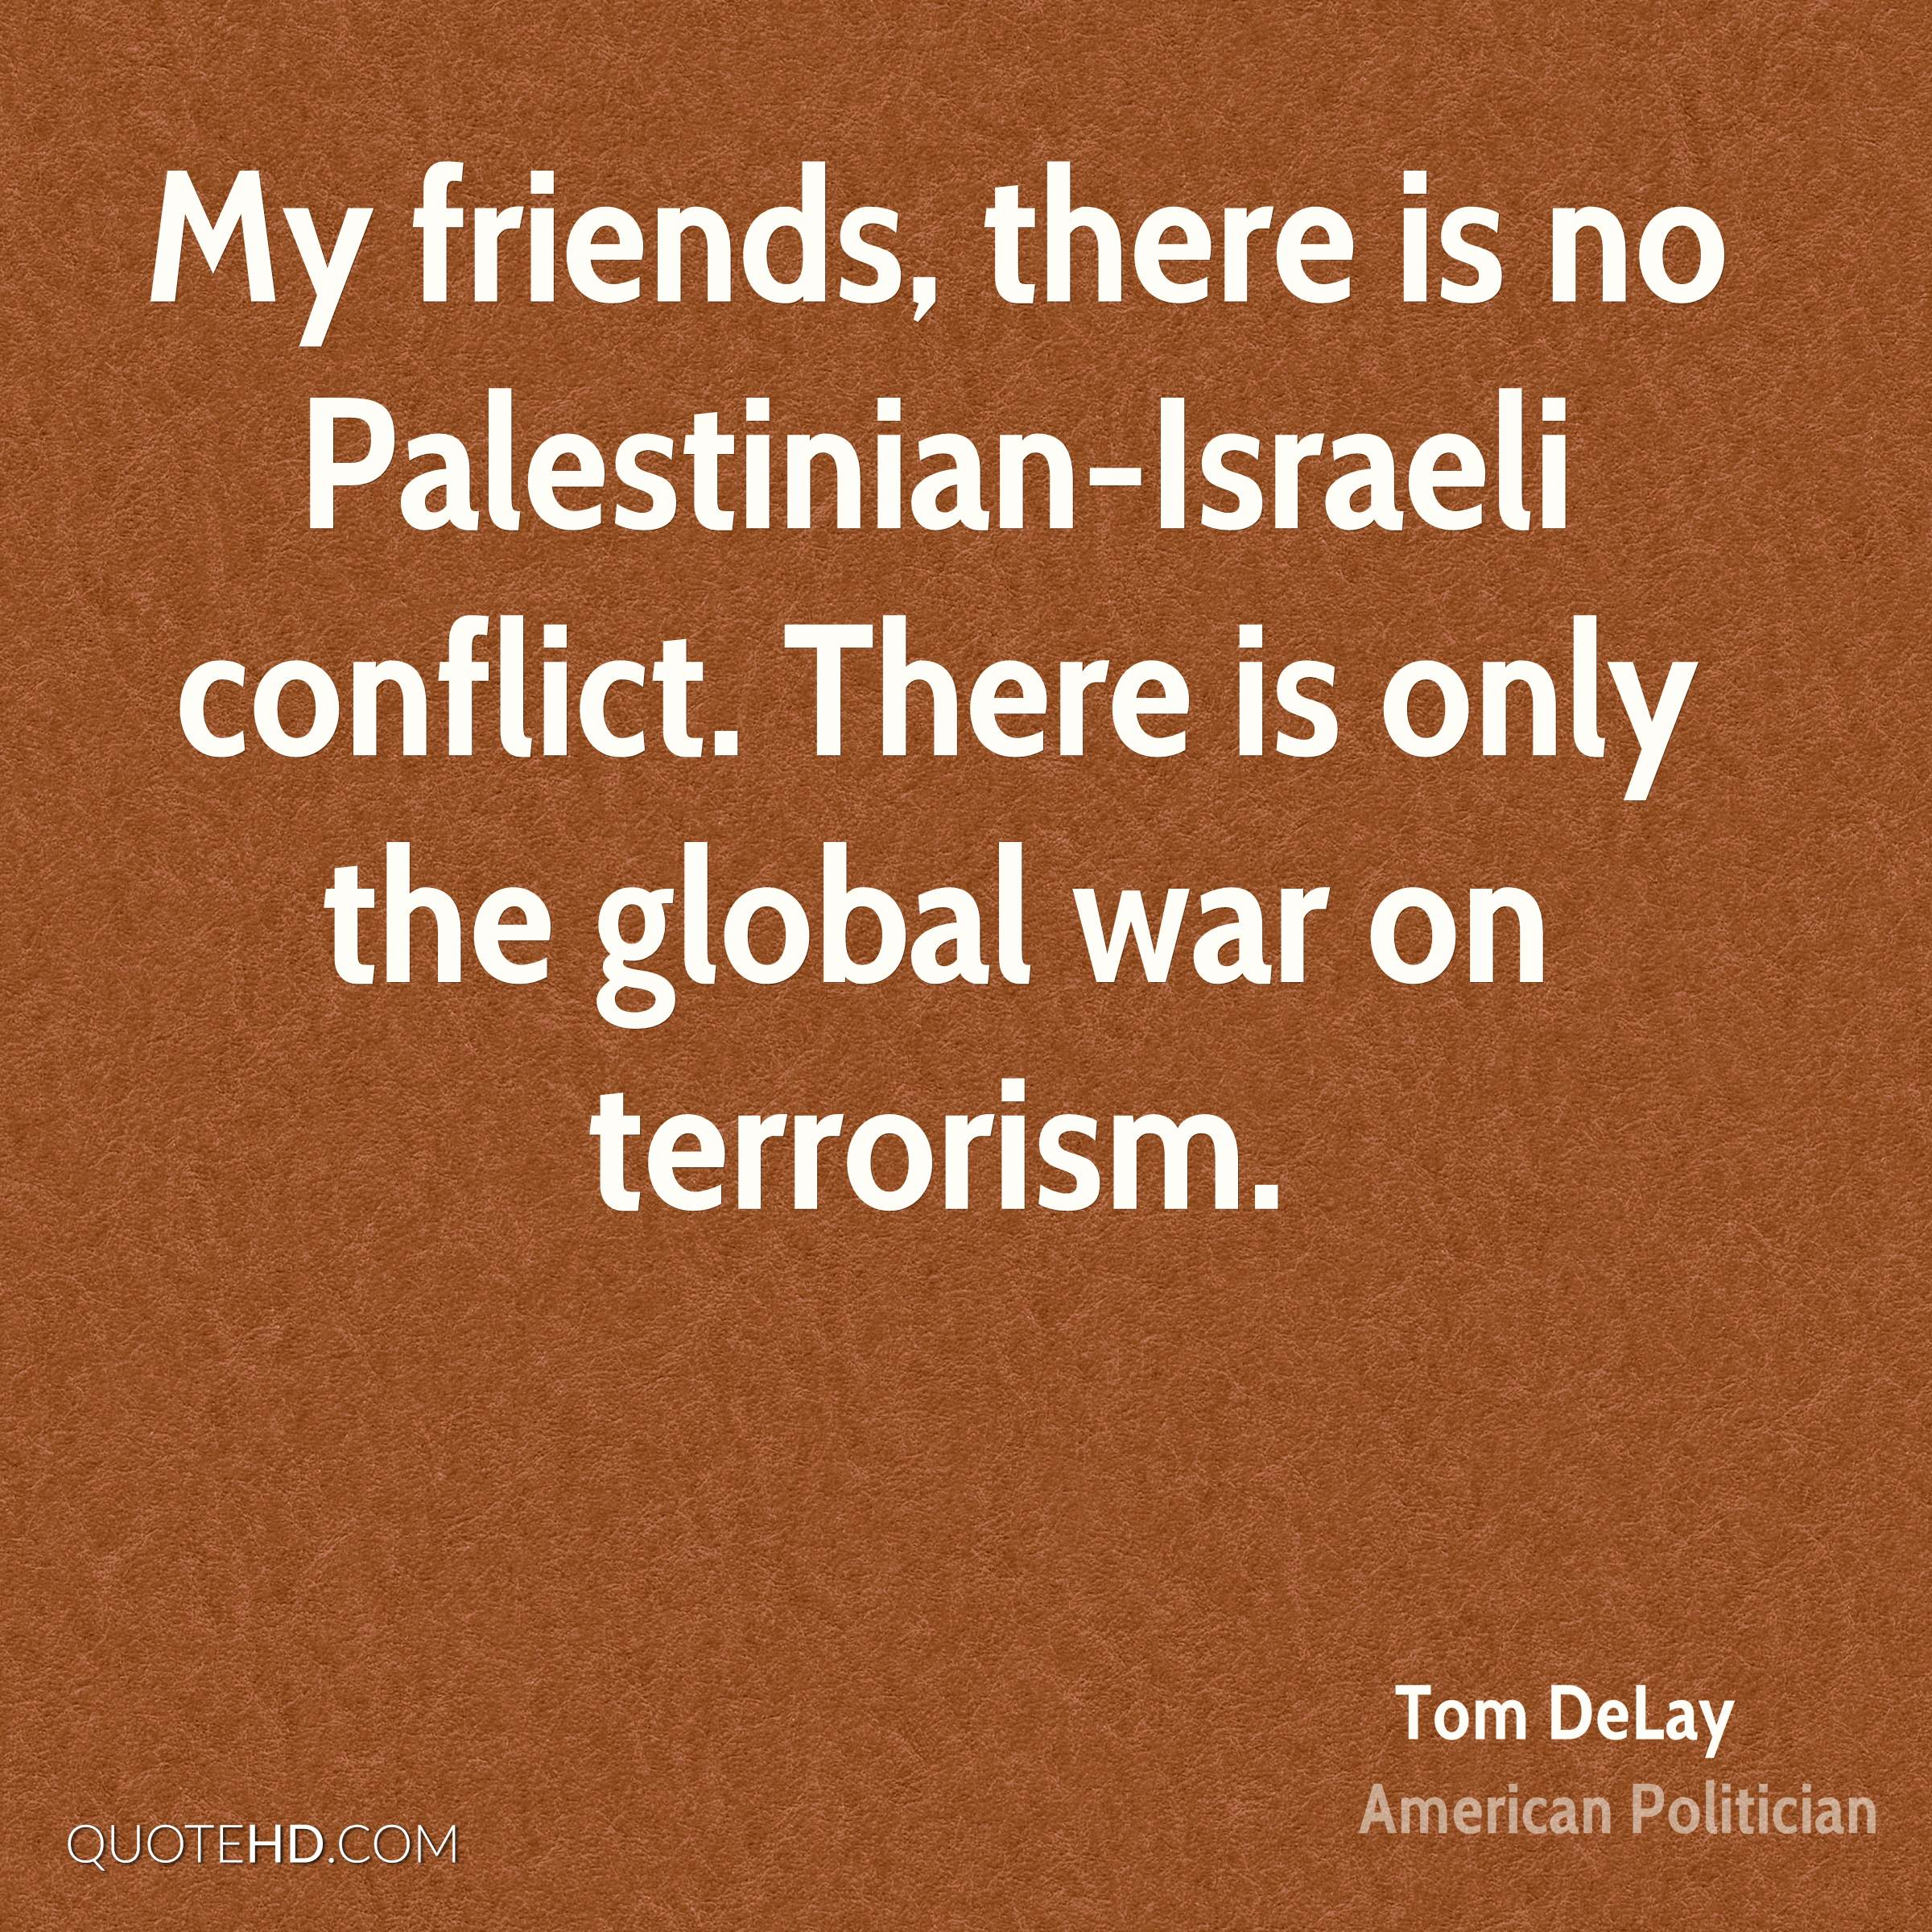 My friends, there is no Palestinian-Israeli conflict. There is only the global war on terrorism.